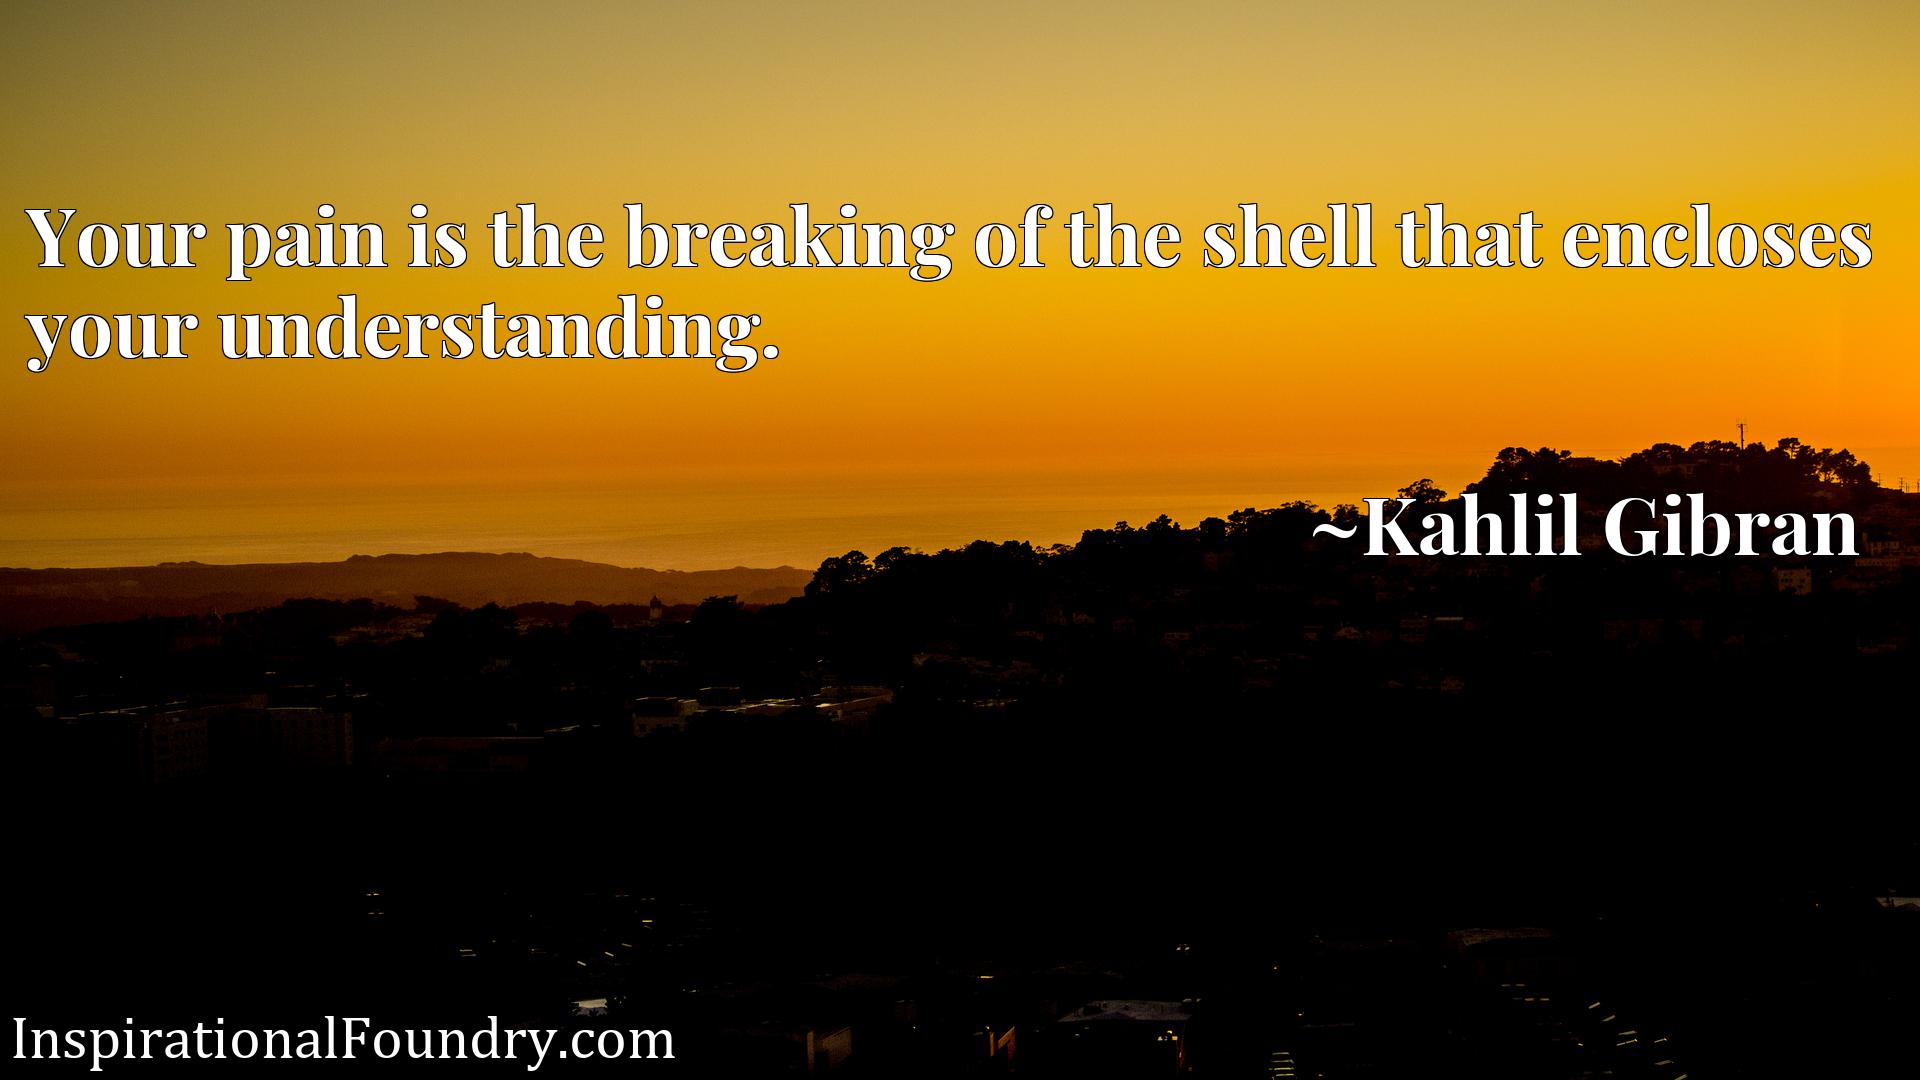 Your pain is the breaking of the shell that encloses your understanding.